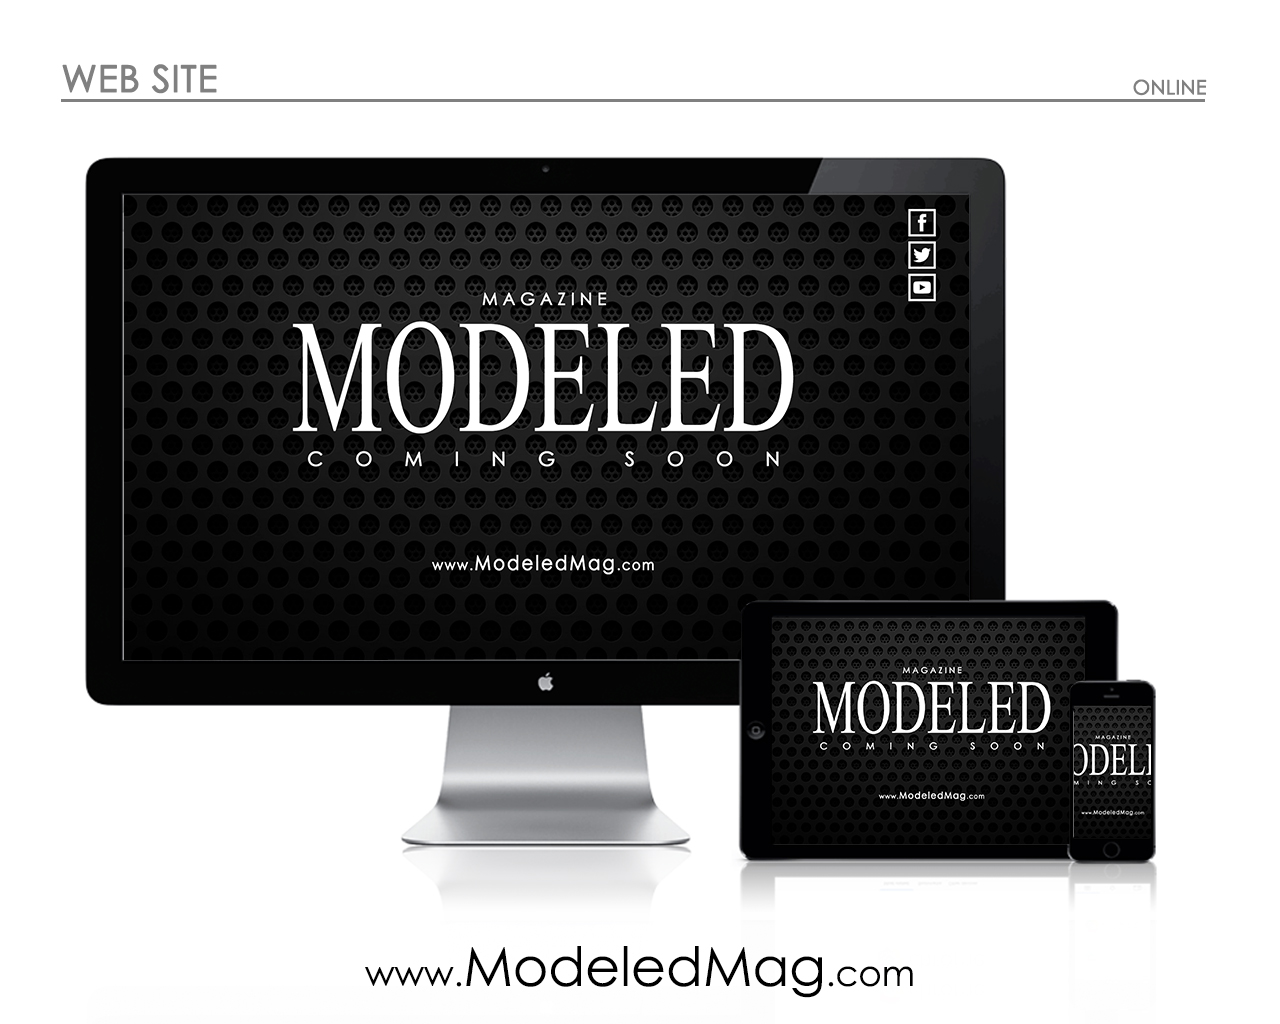 modeled_web